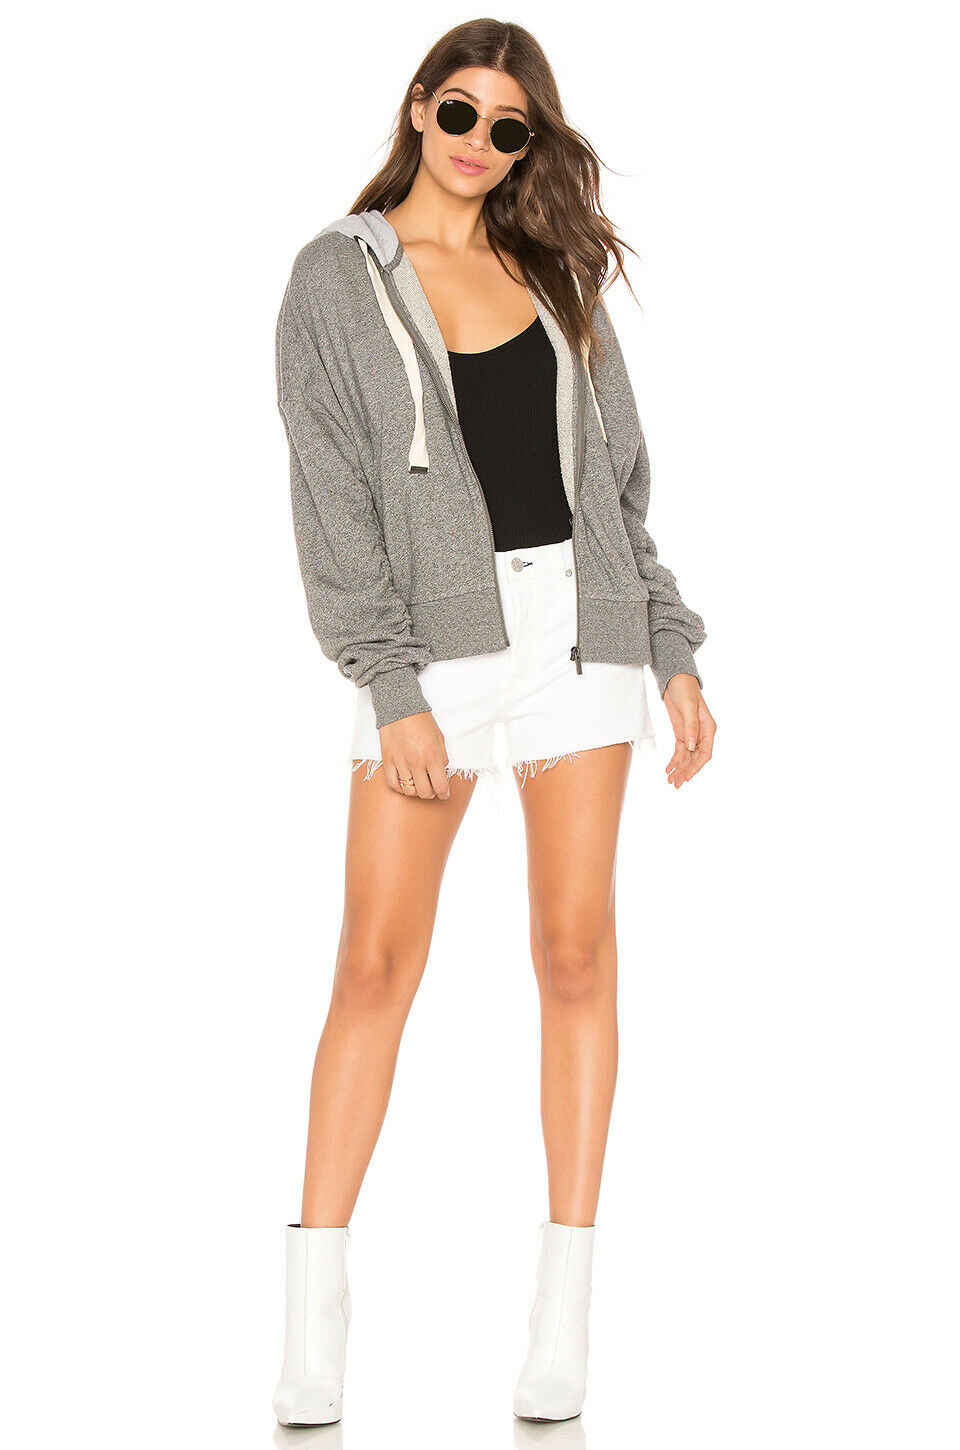 128 NWT SPLENDID SzXS BARRE ACTIVE SHIRRED ZIP FRENCH TERRY HOODIE HEATHER GREY f083f5